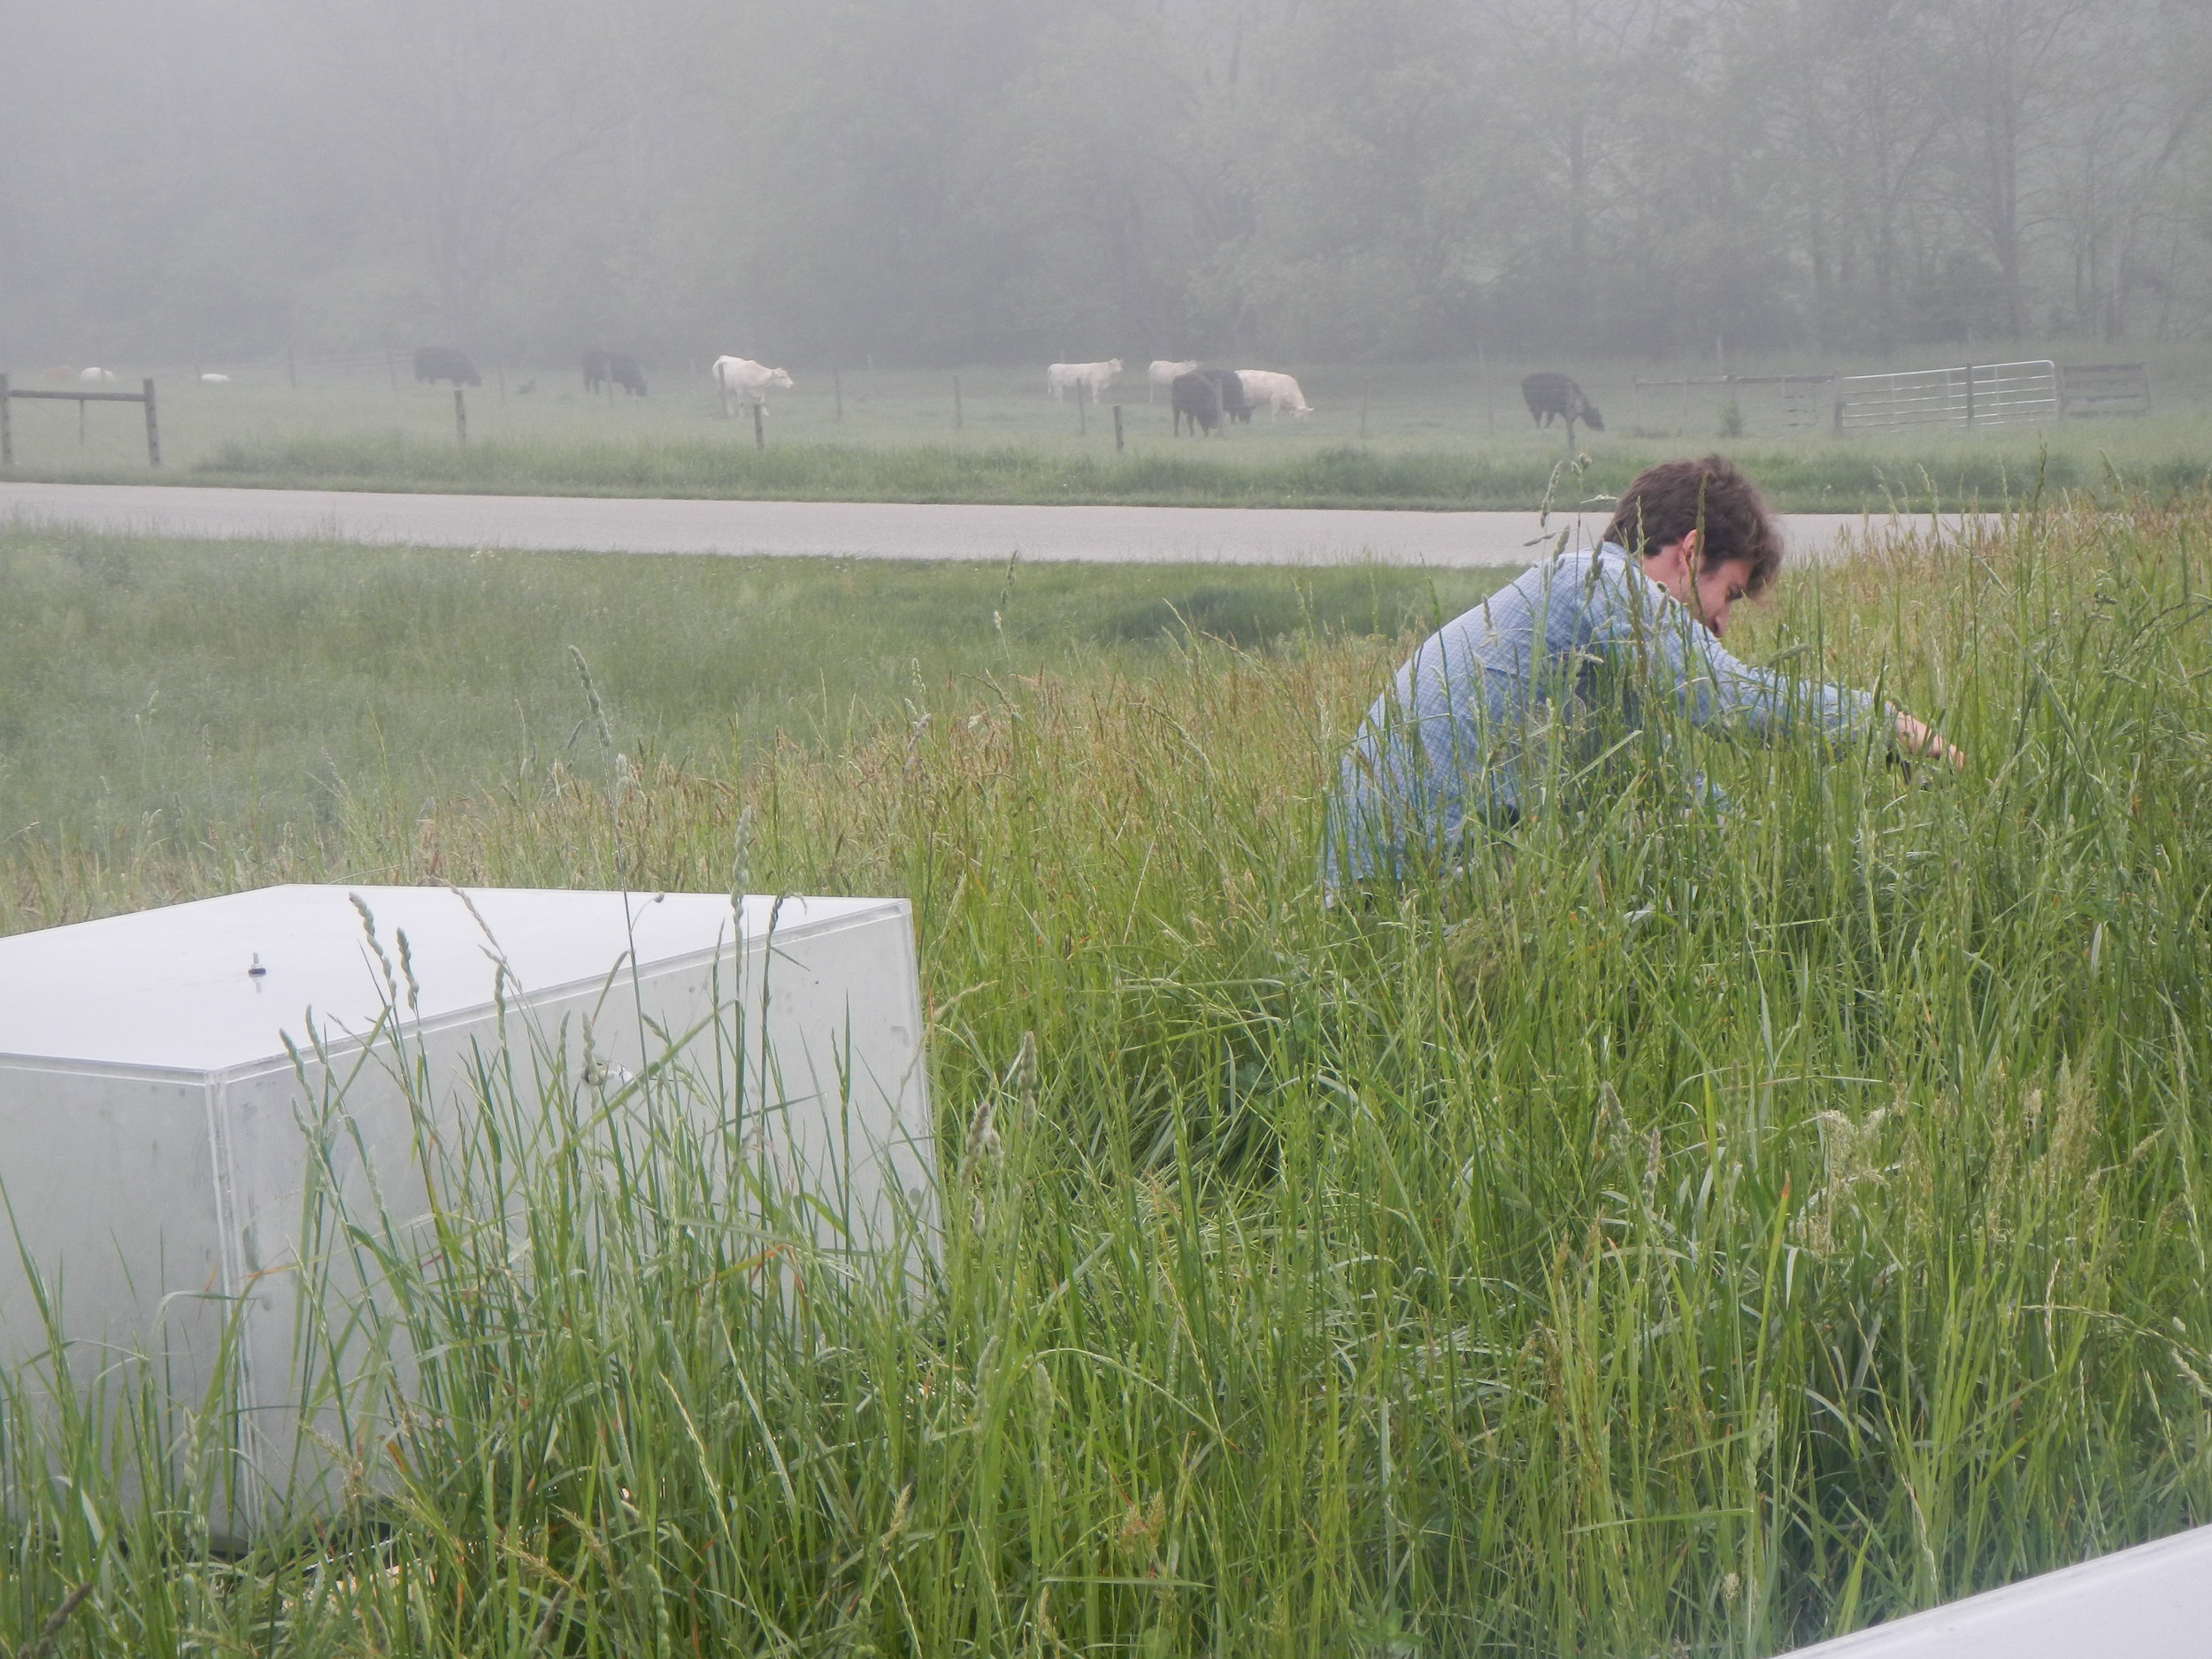 Carl working at the S.C.A.R.E. (Soil Carbon Antibiotic Resistance Experiment) site, where we are tracking the cycling of carbon and nitrogen when soils are exposed to antibiotic free manure or manure from cattle given one of two types of antibiotics.